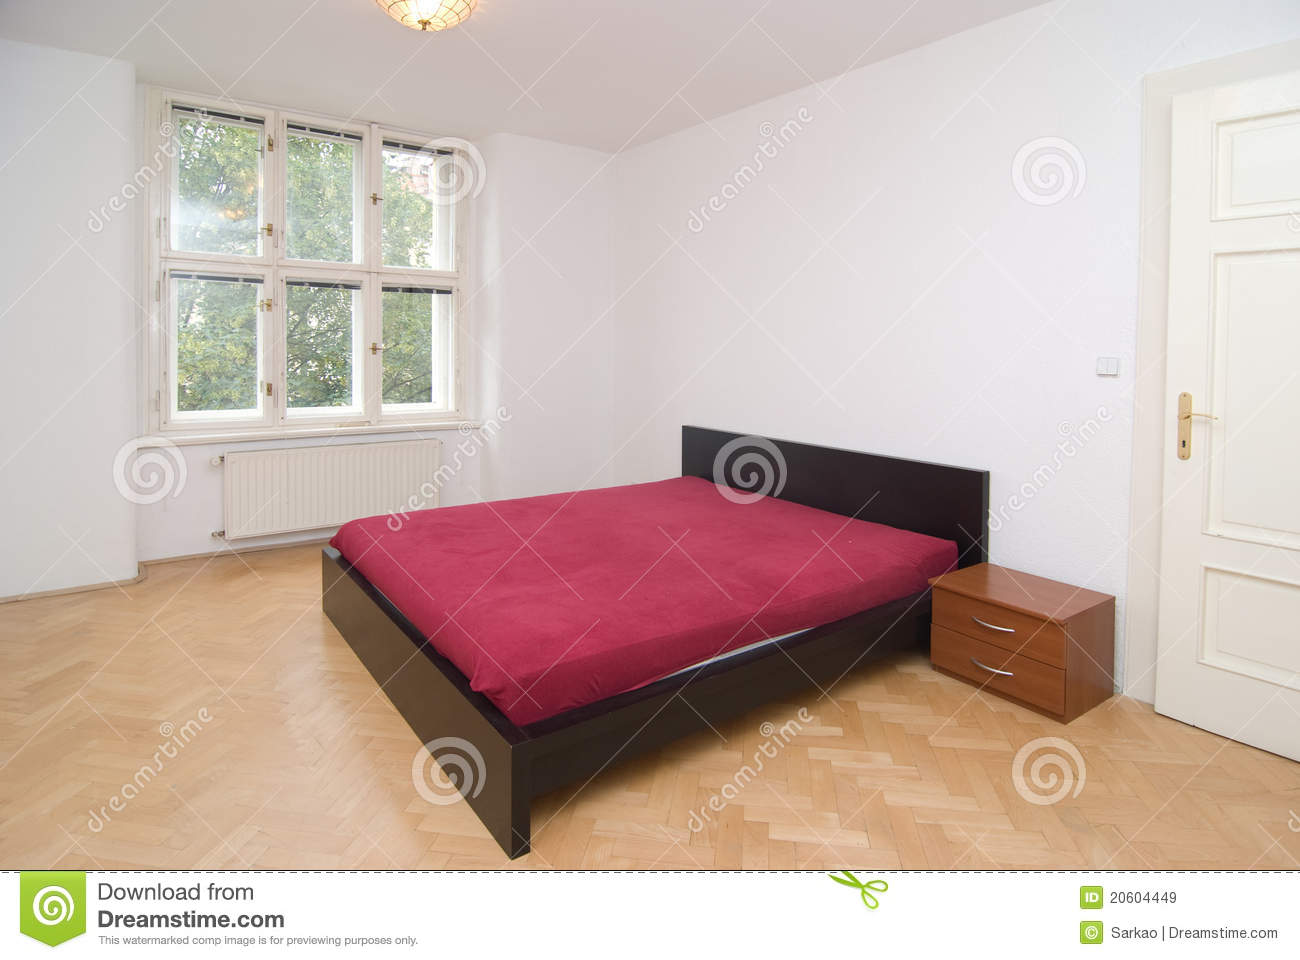 Empty bedroom royalty free stock images image 20604449 - Image bed room ...